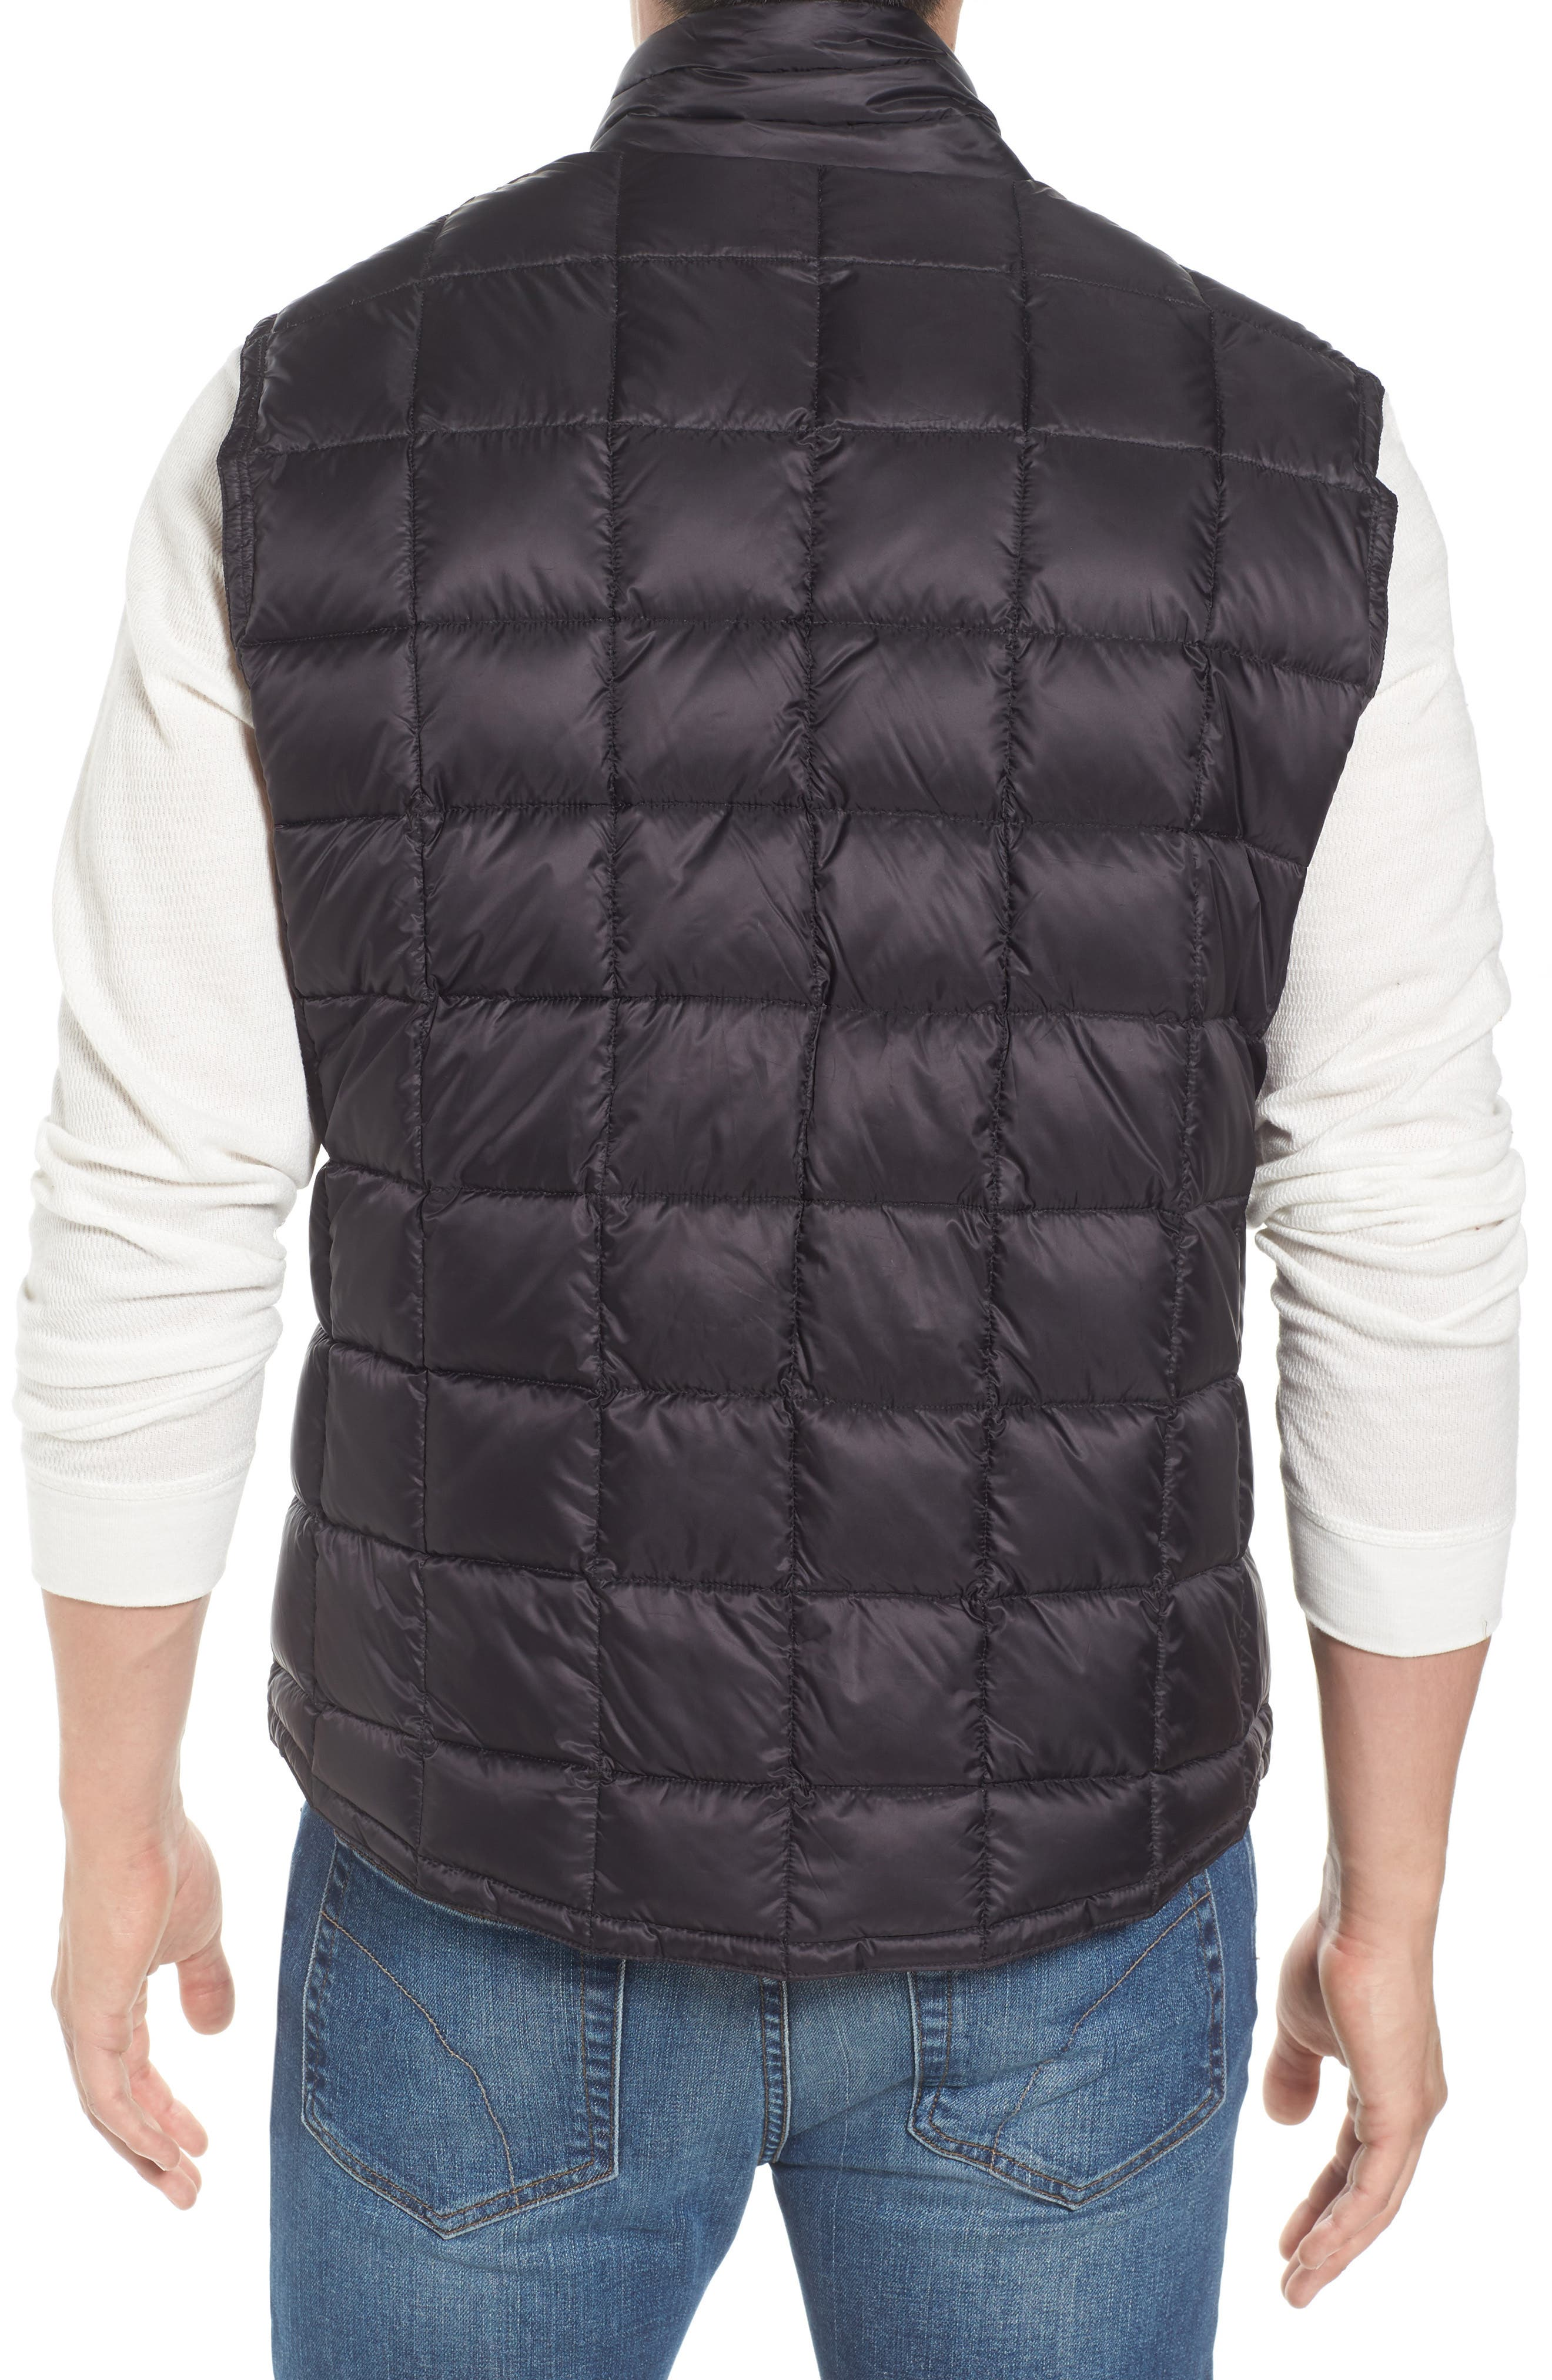 Billings Down Vest,                             Alternate thumbnail 2, color,                             001